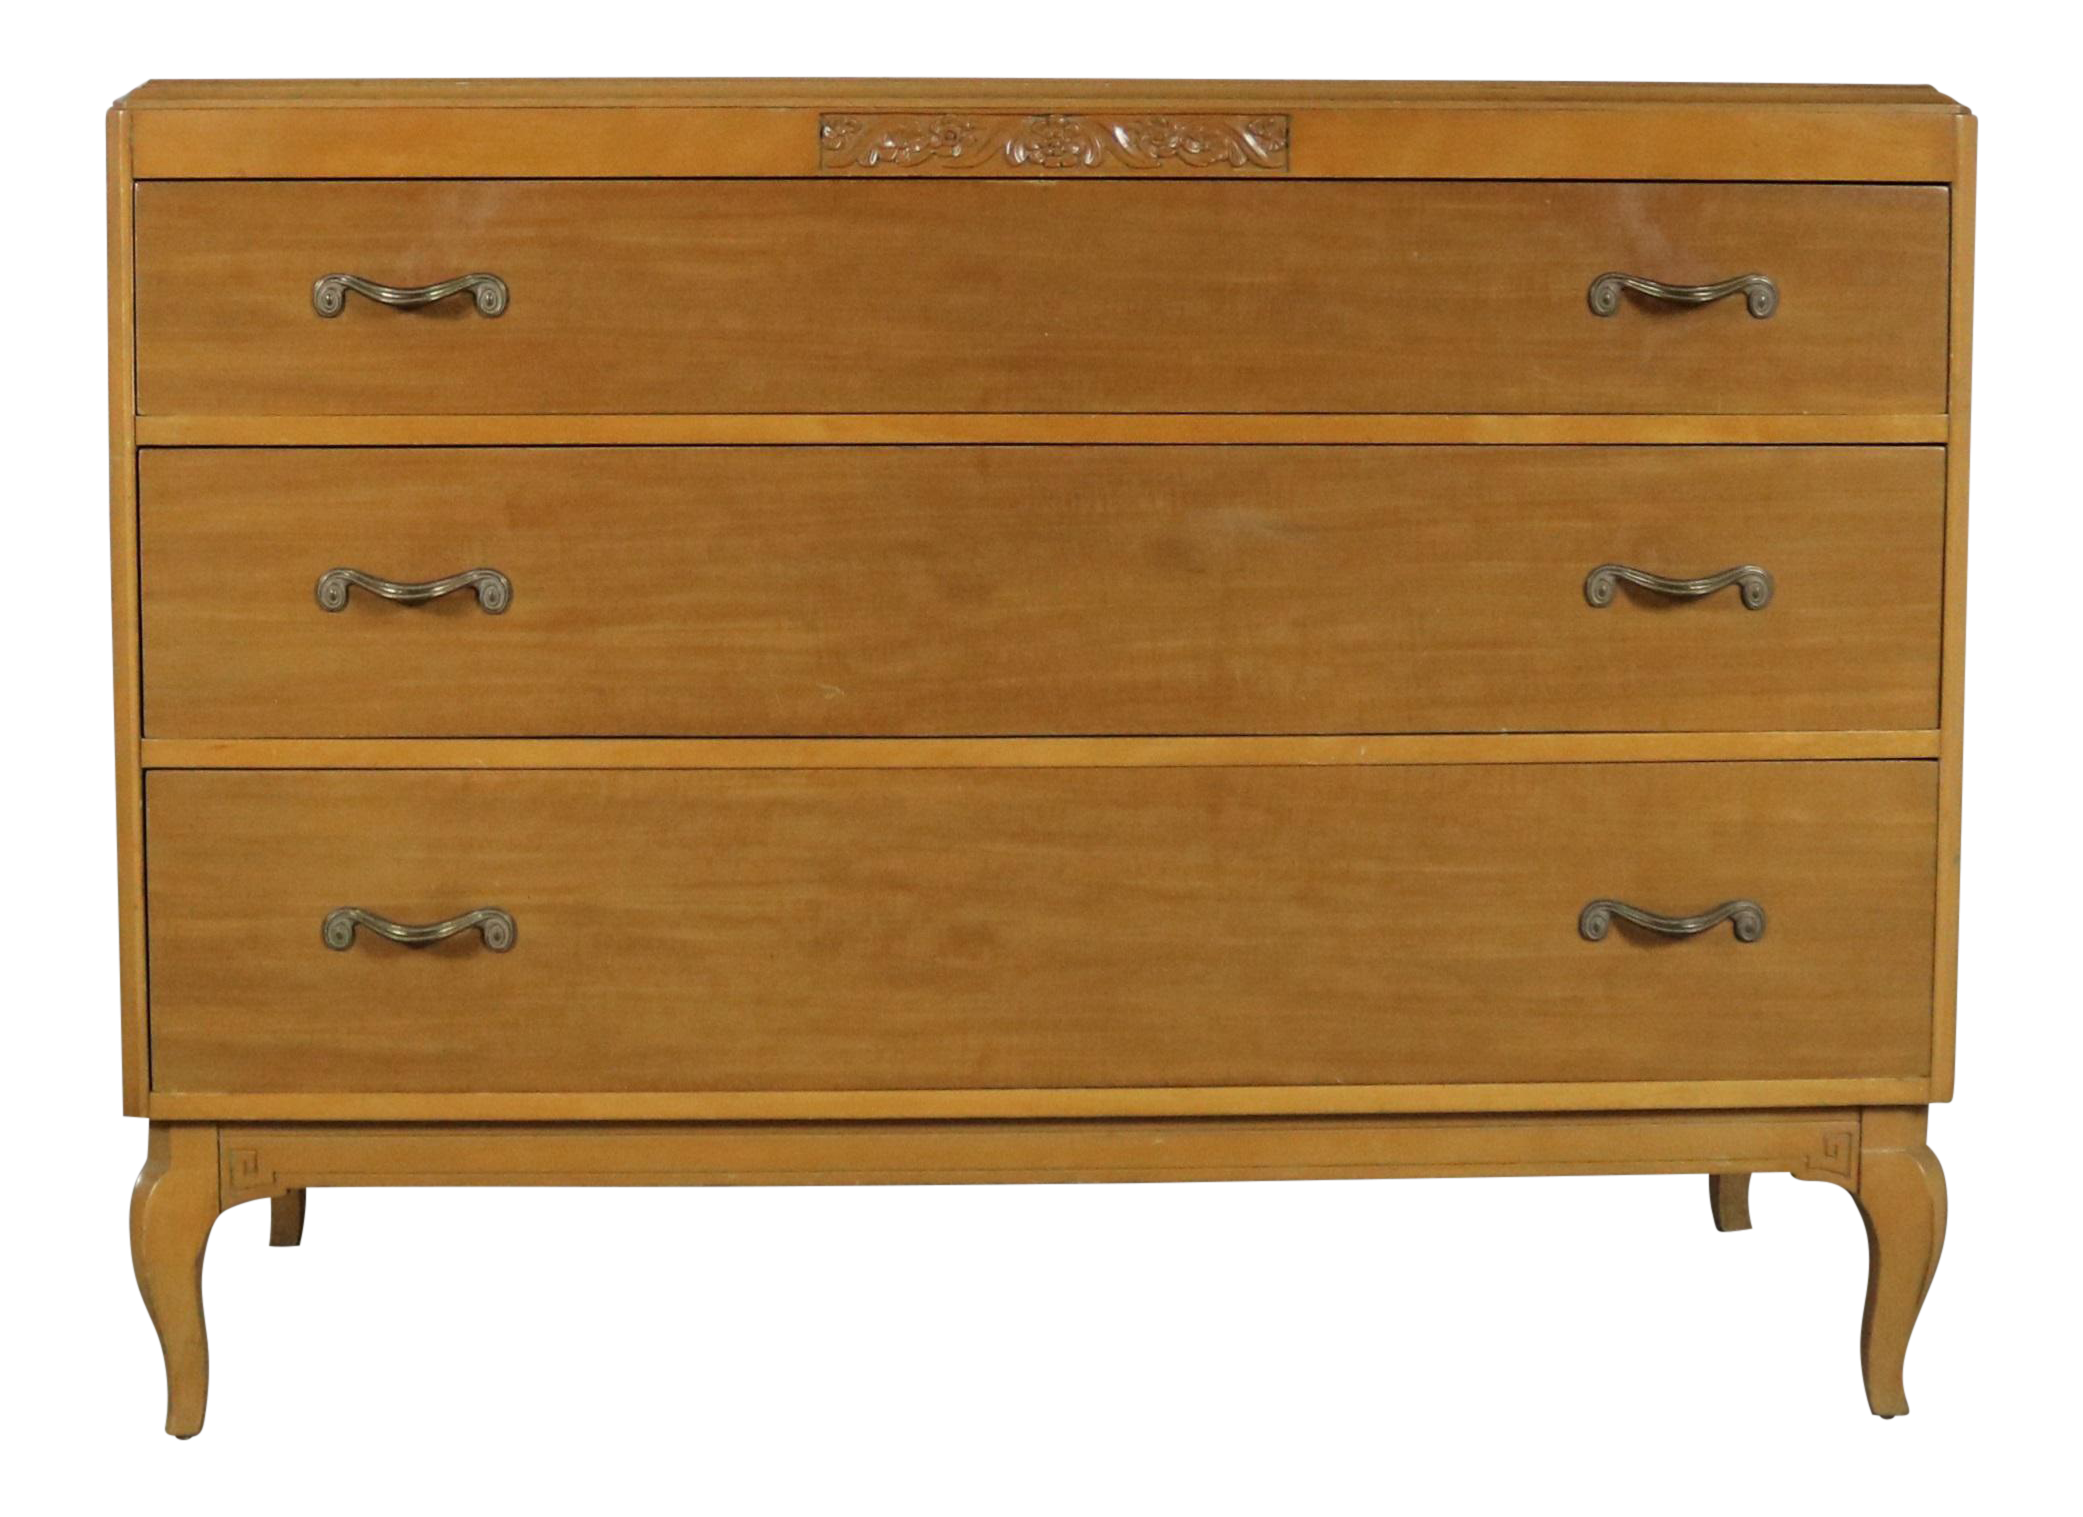 Art Deco Style Low Dresser By Rway Northern Furniture Company Of Sheboygan Chairish